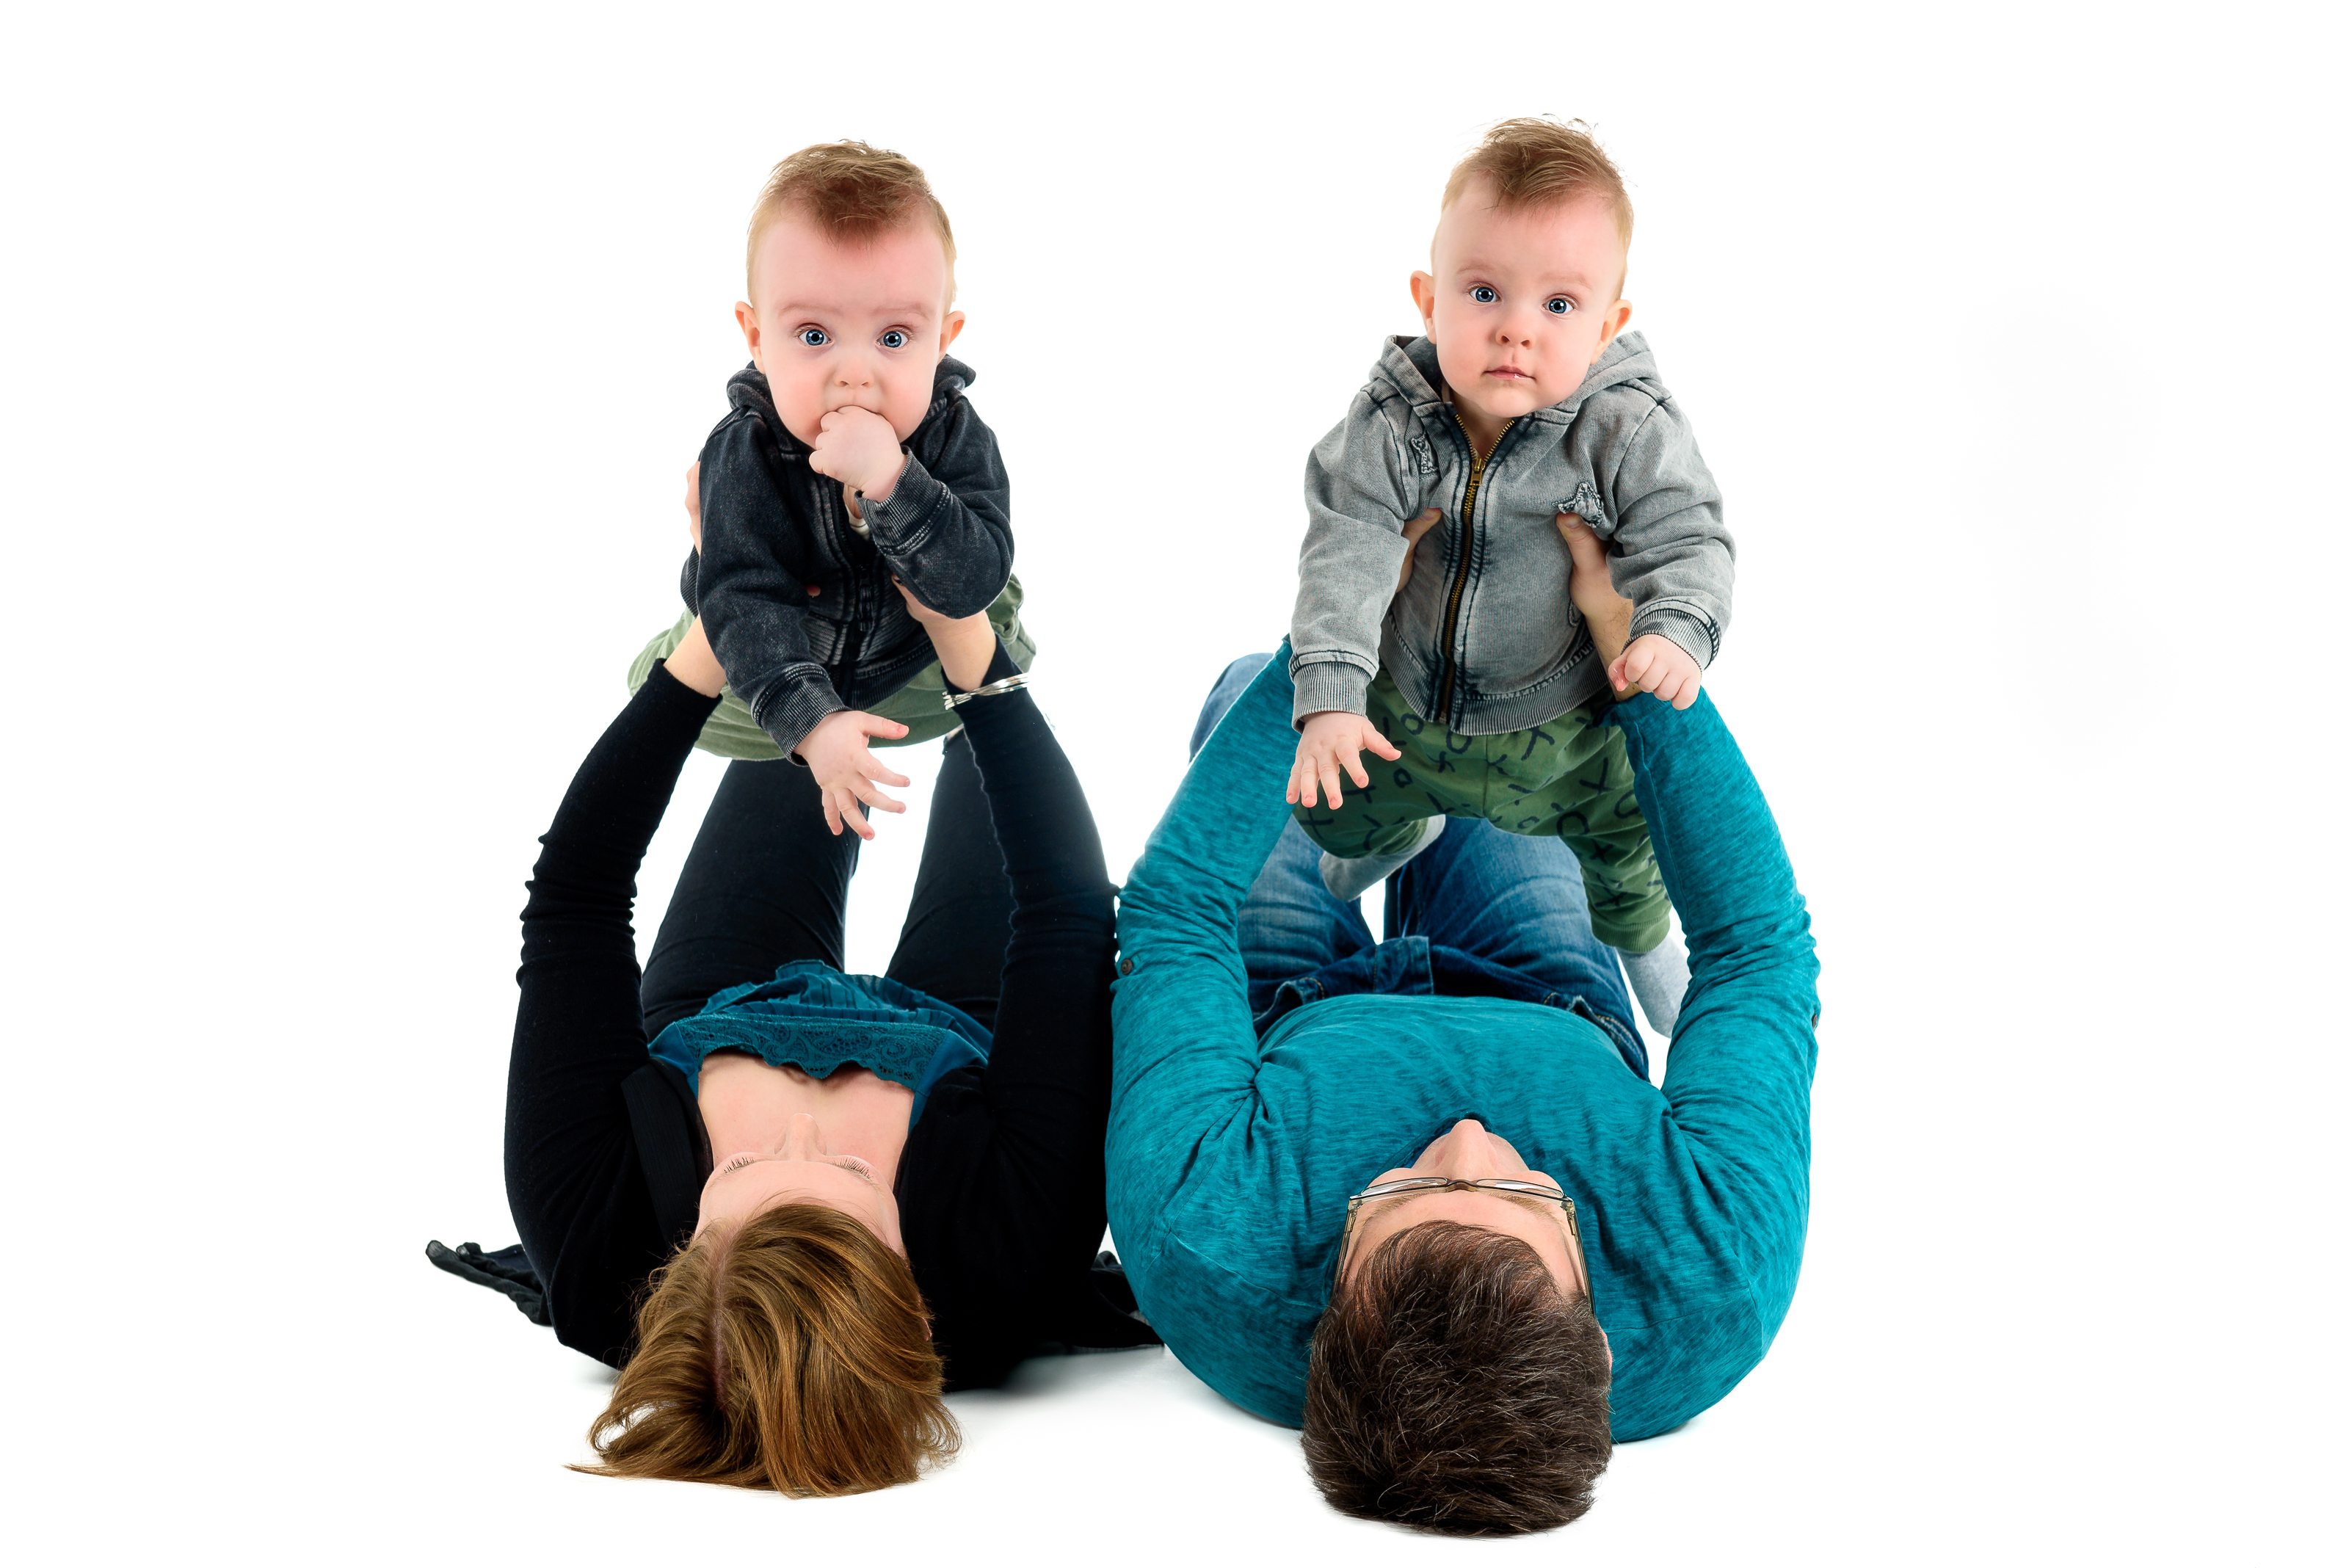 Sweden pays parents for having kids — and it reaps huge benefits. Why doesn't the US?